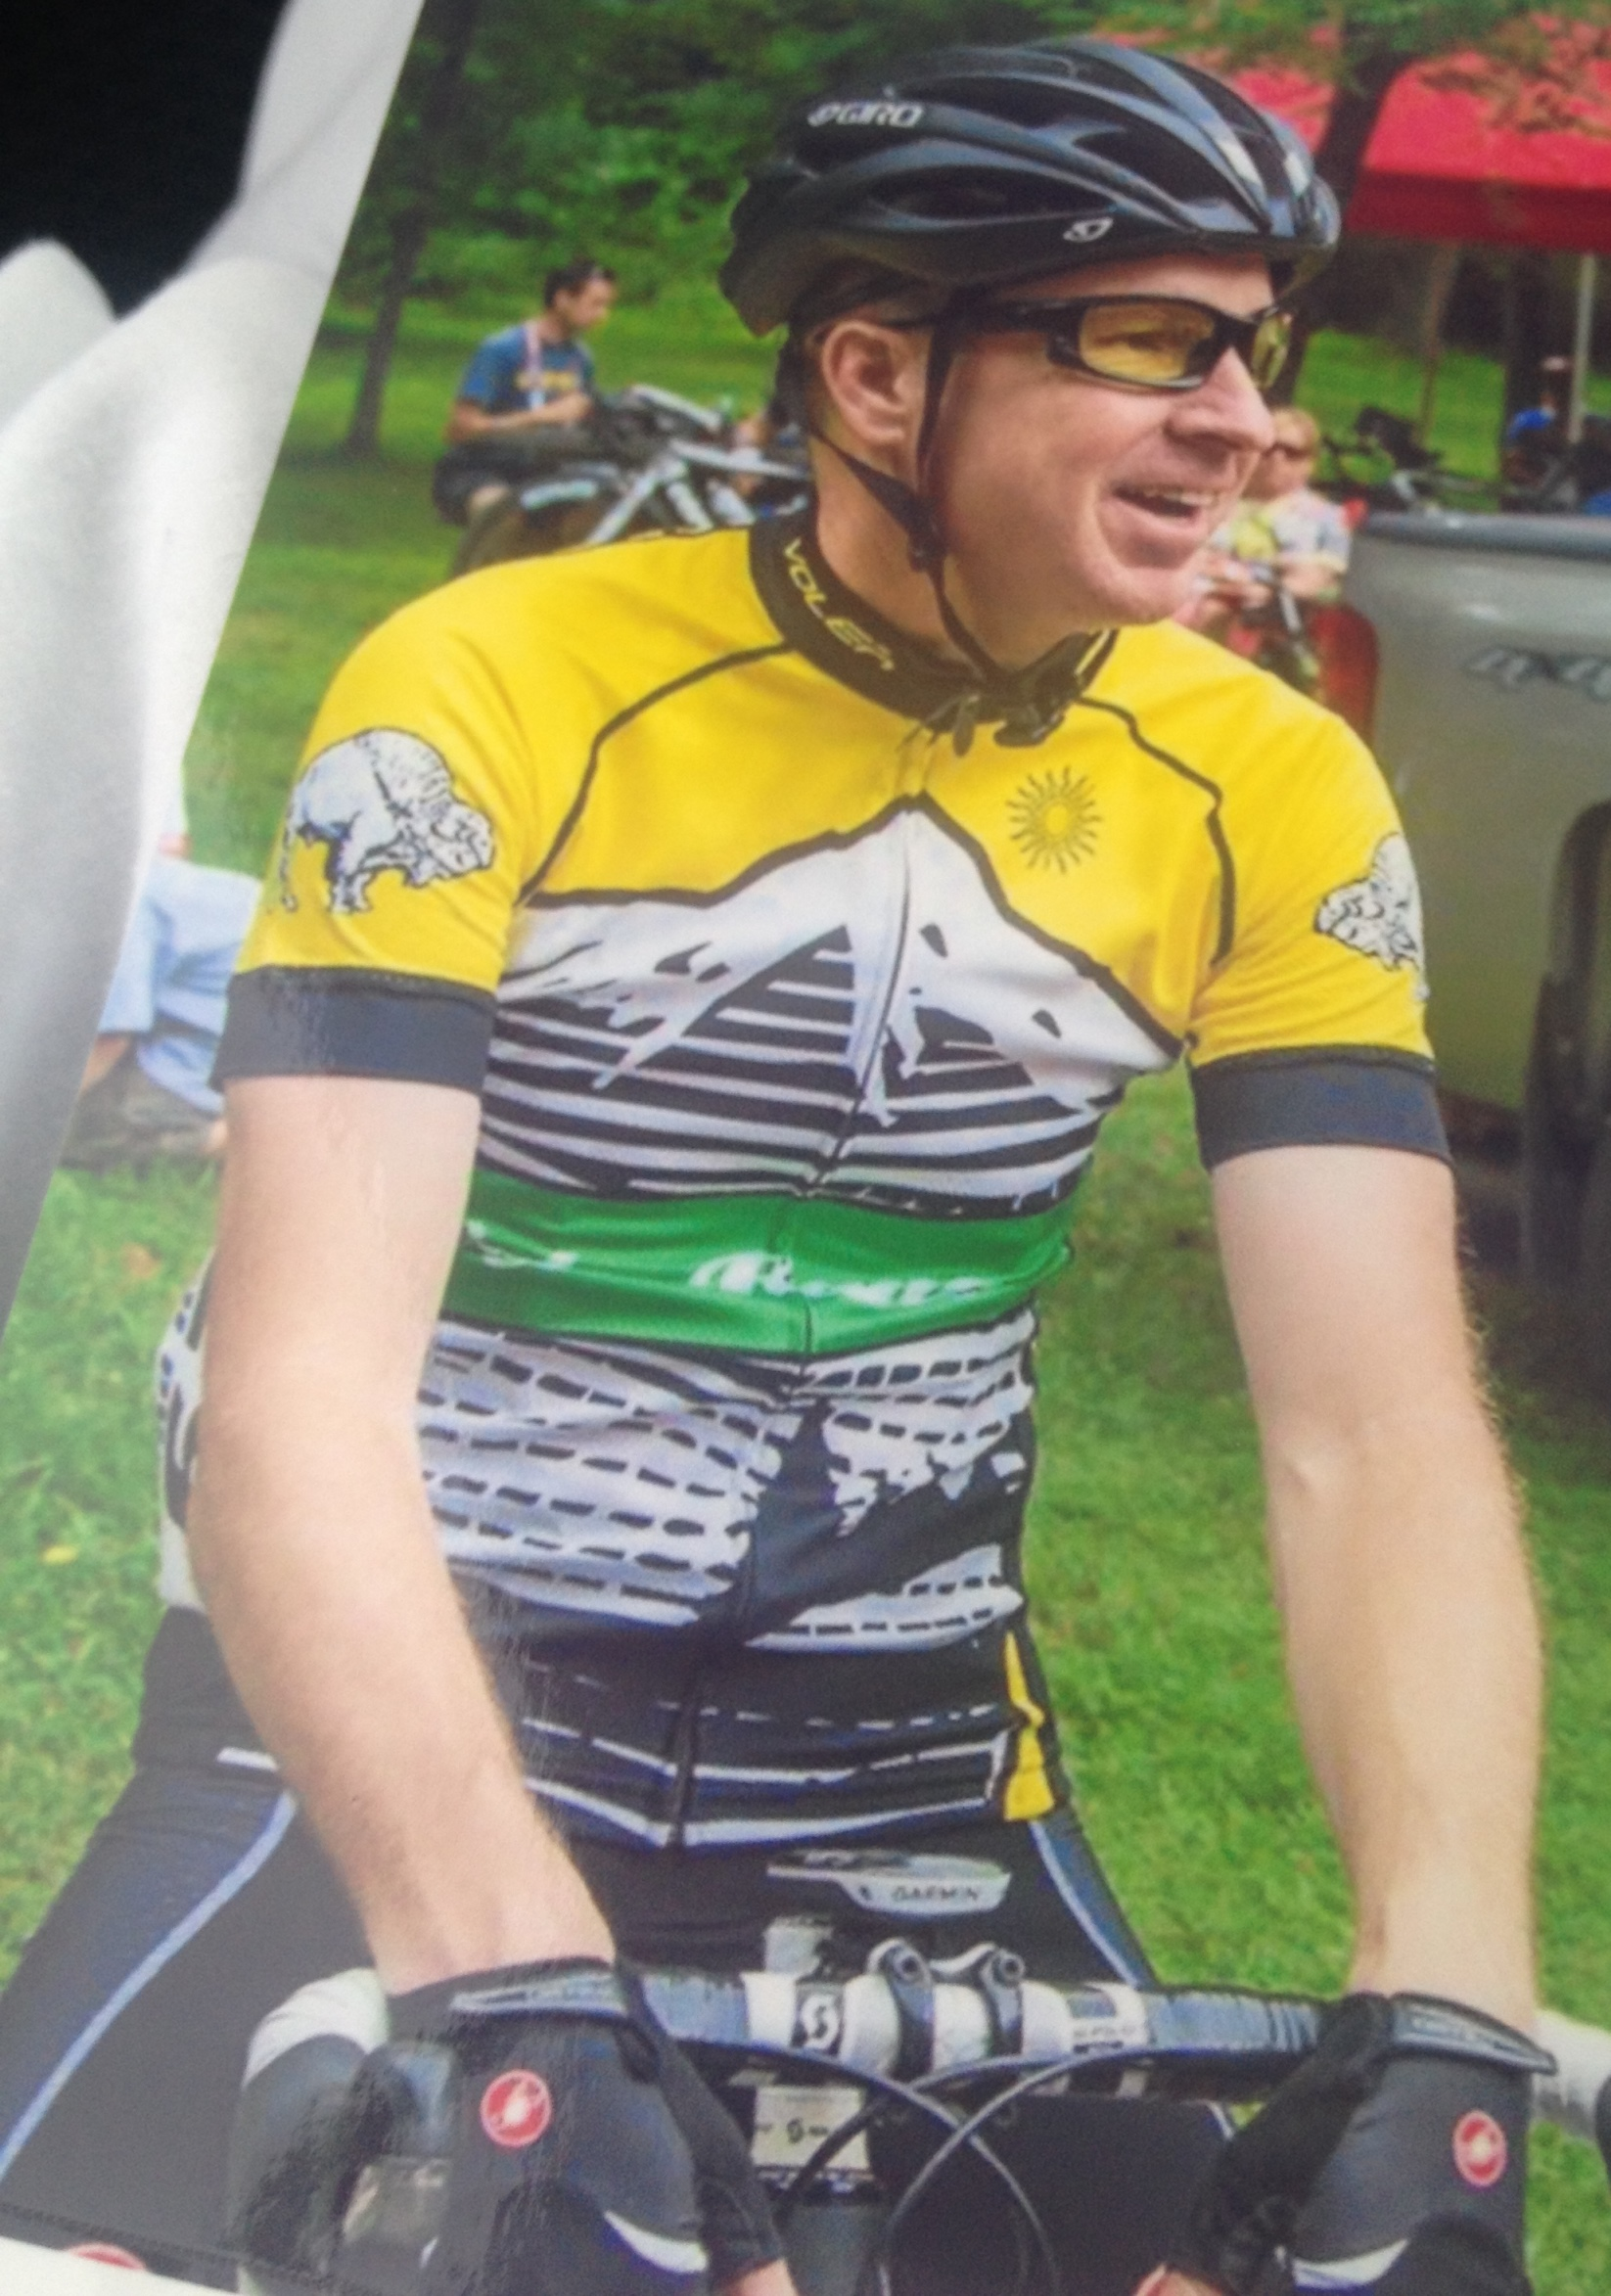 Me just before the start of the race on the day of my crash July 2, 2015